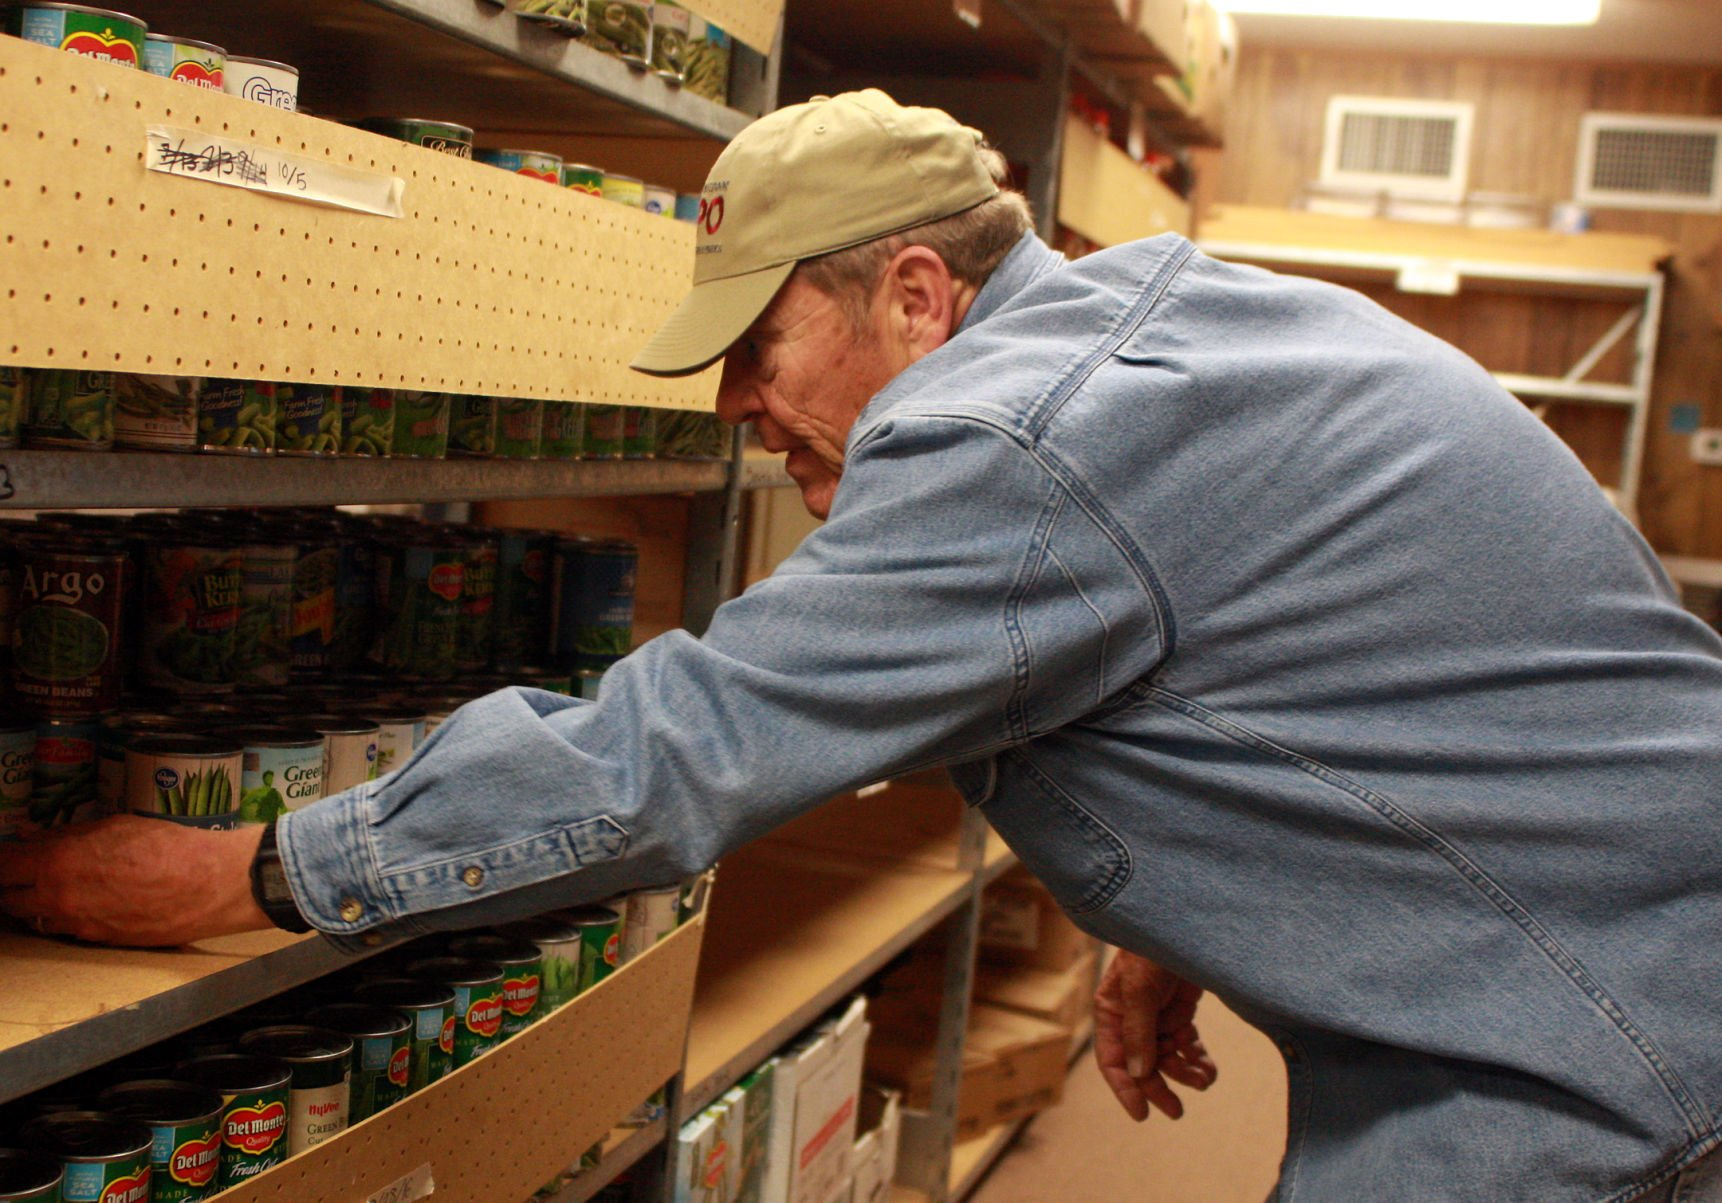 Bellevue Food Pantry in dire need of supplies Bellevue Leader